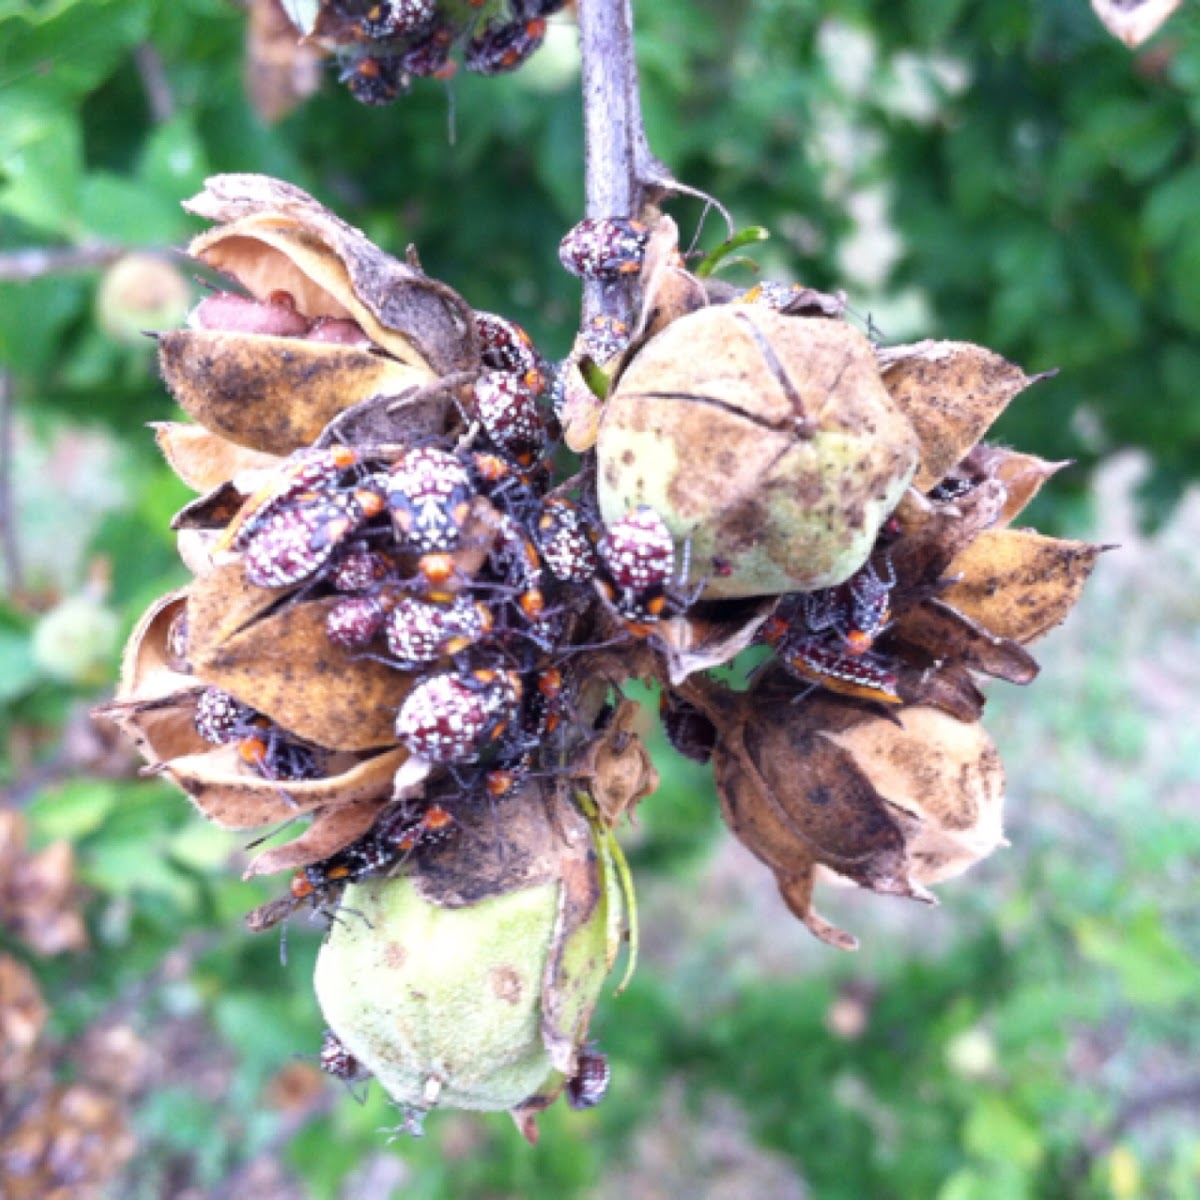 Scentless plant bugs (nymphs)